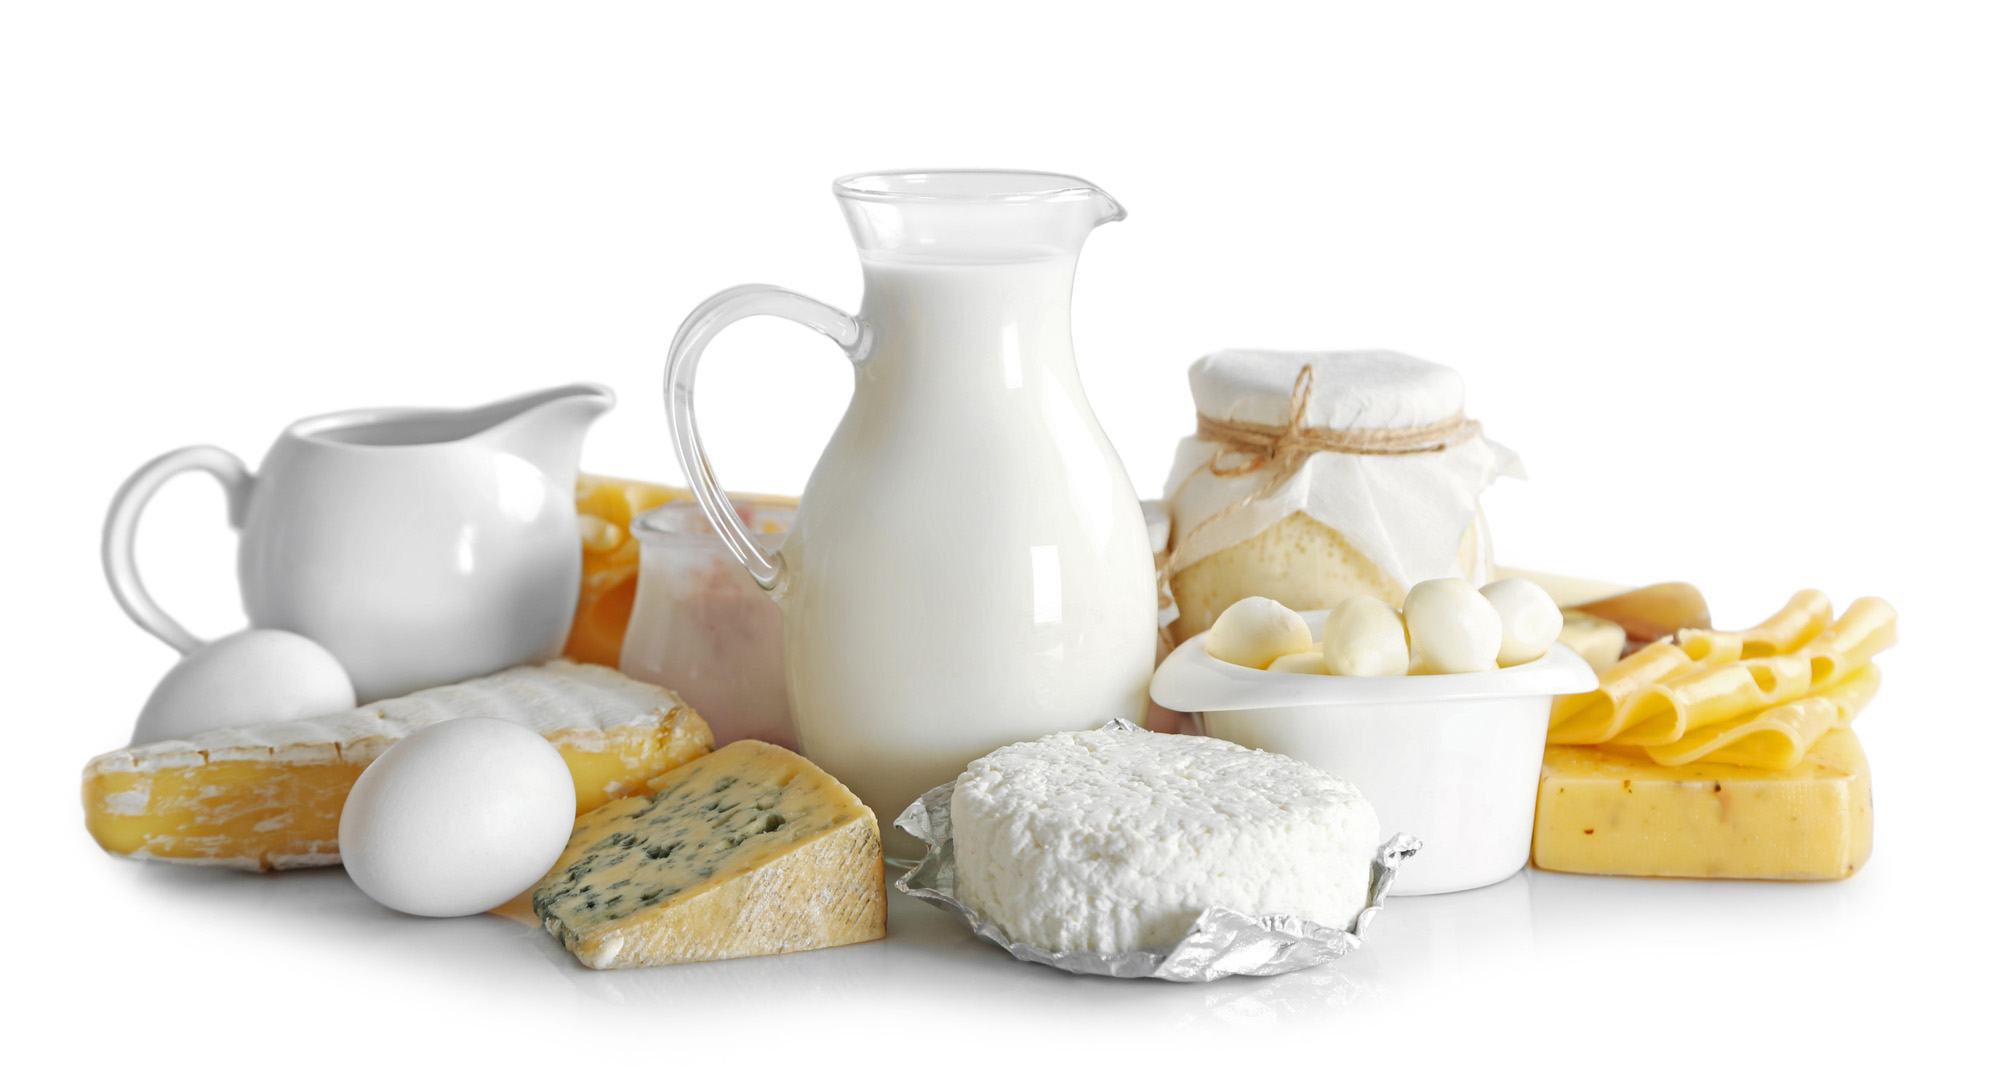 Set of fresh dairy products - 72 ppi